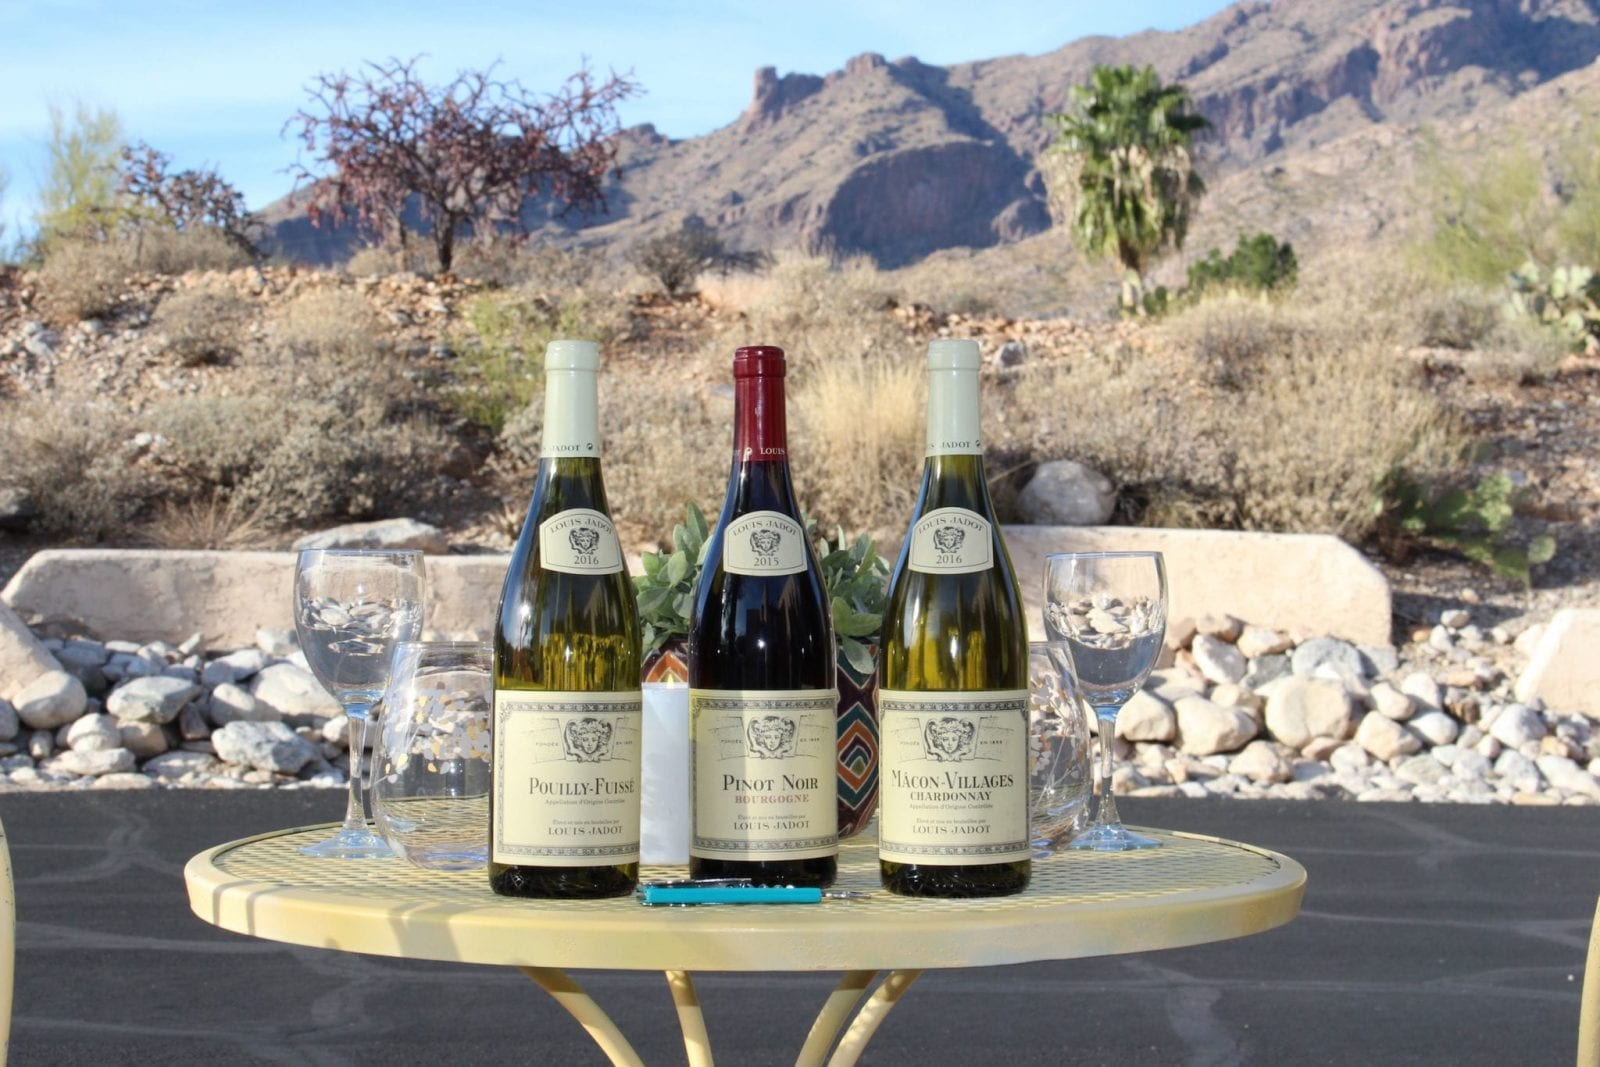 This is a close up of the Louis Jadot wines on a gorgeous yellow picnic table, with the Sonoran Desert scenery in the background.